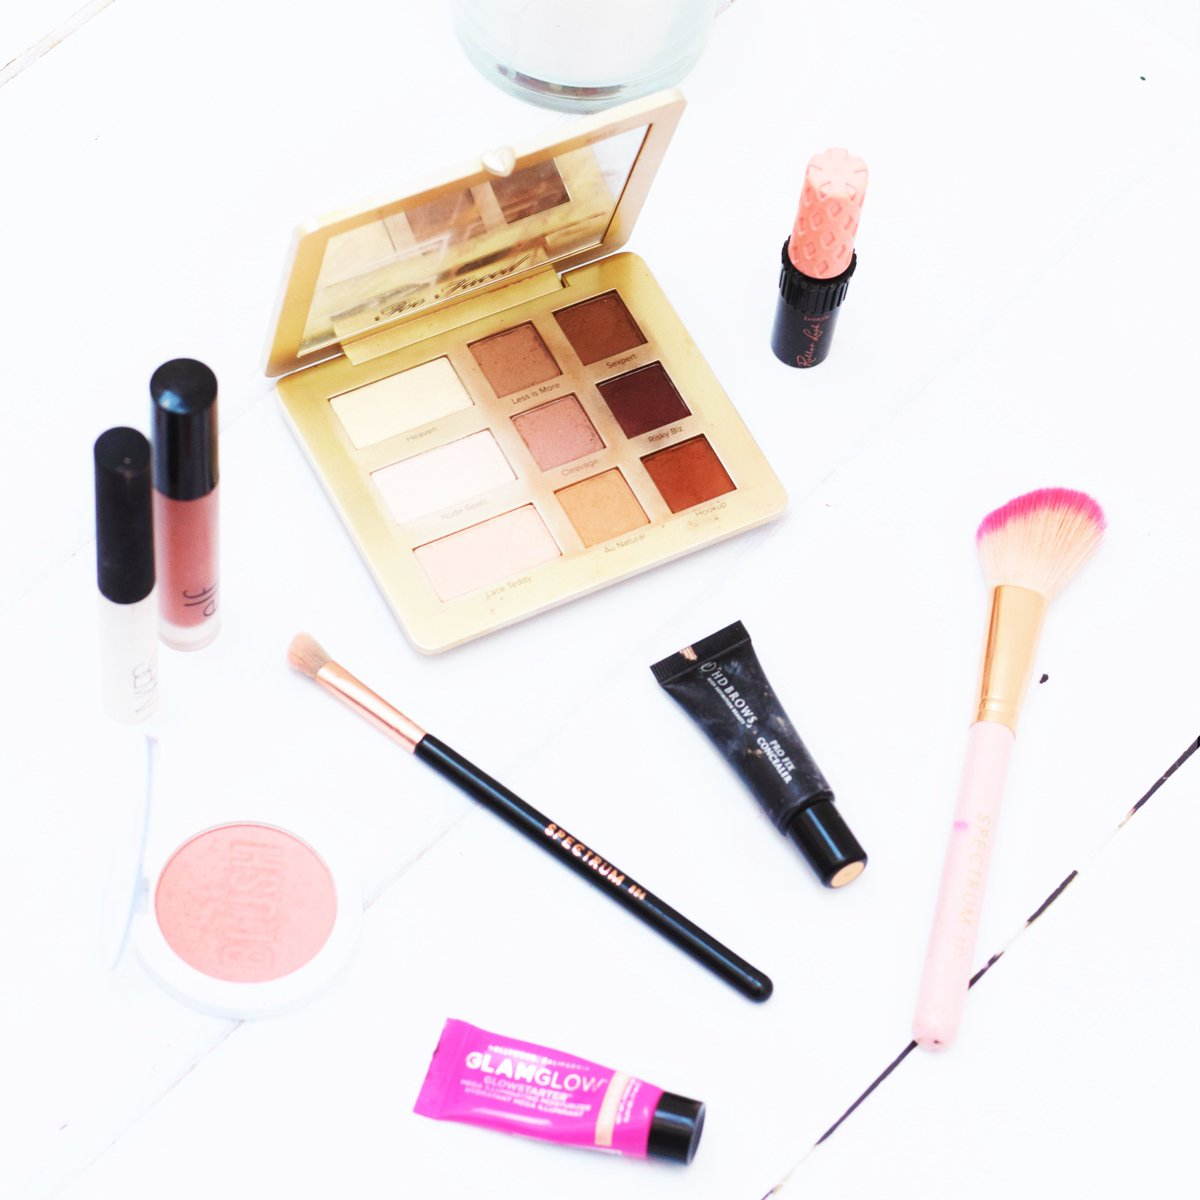 Do you recycle your beauty products? http://buff.ly/37ANXzY  @LovingBlogs @BloggersHut @BBlogRT @sincerelyessie #theclqrt #BloggersHutRT #bloggerstribe #bblogger #makeup #recycling